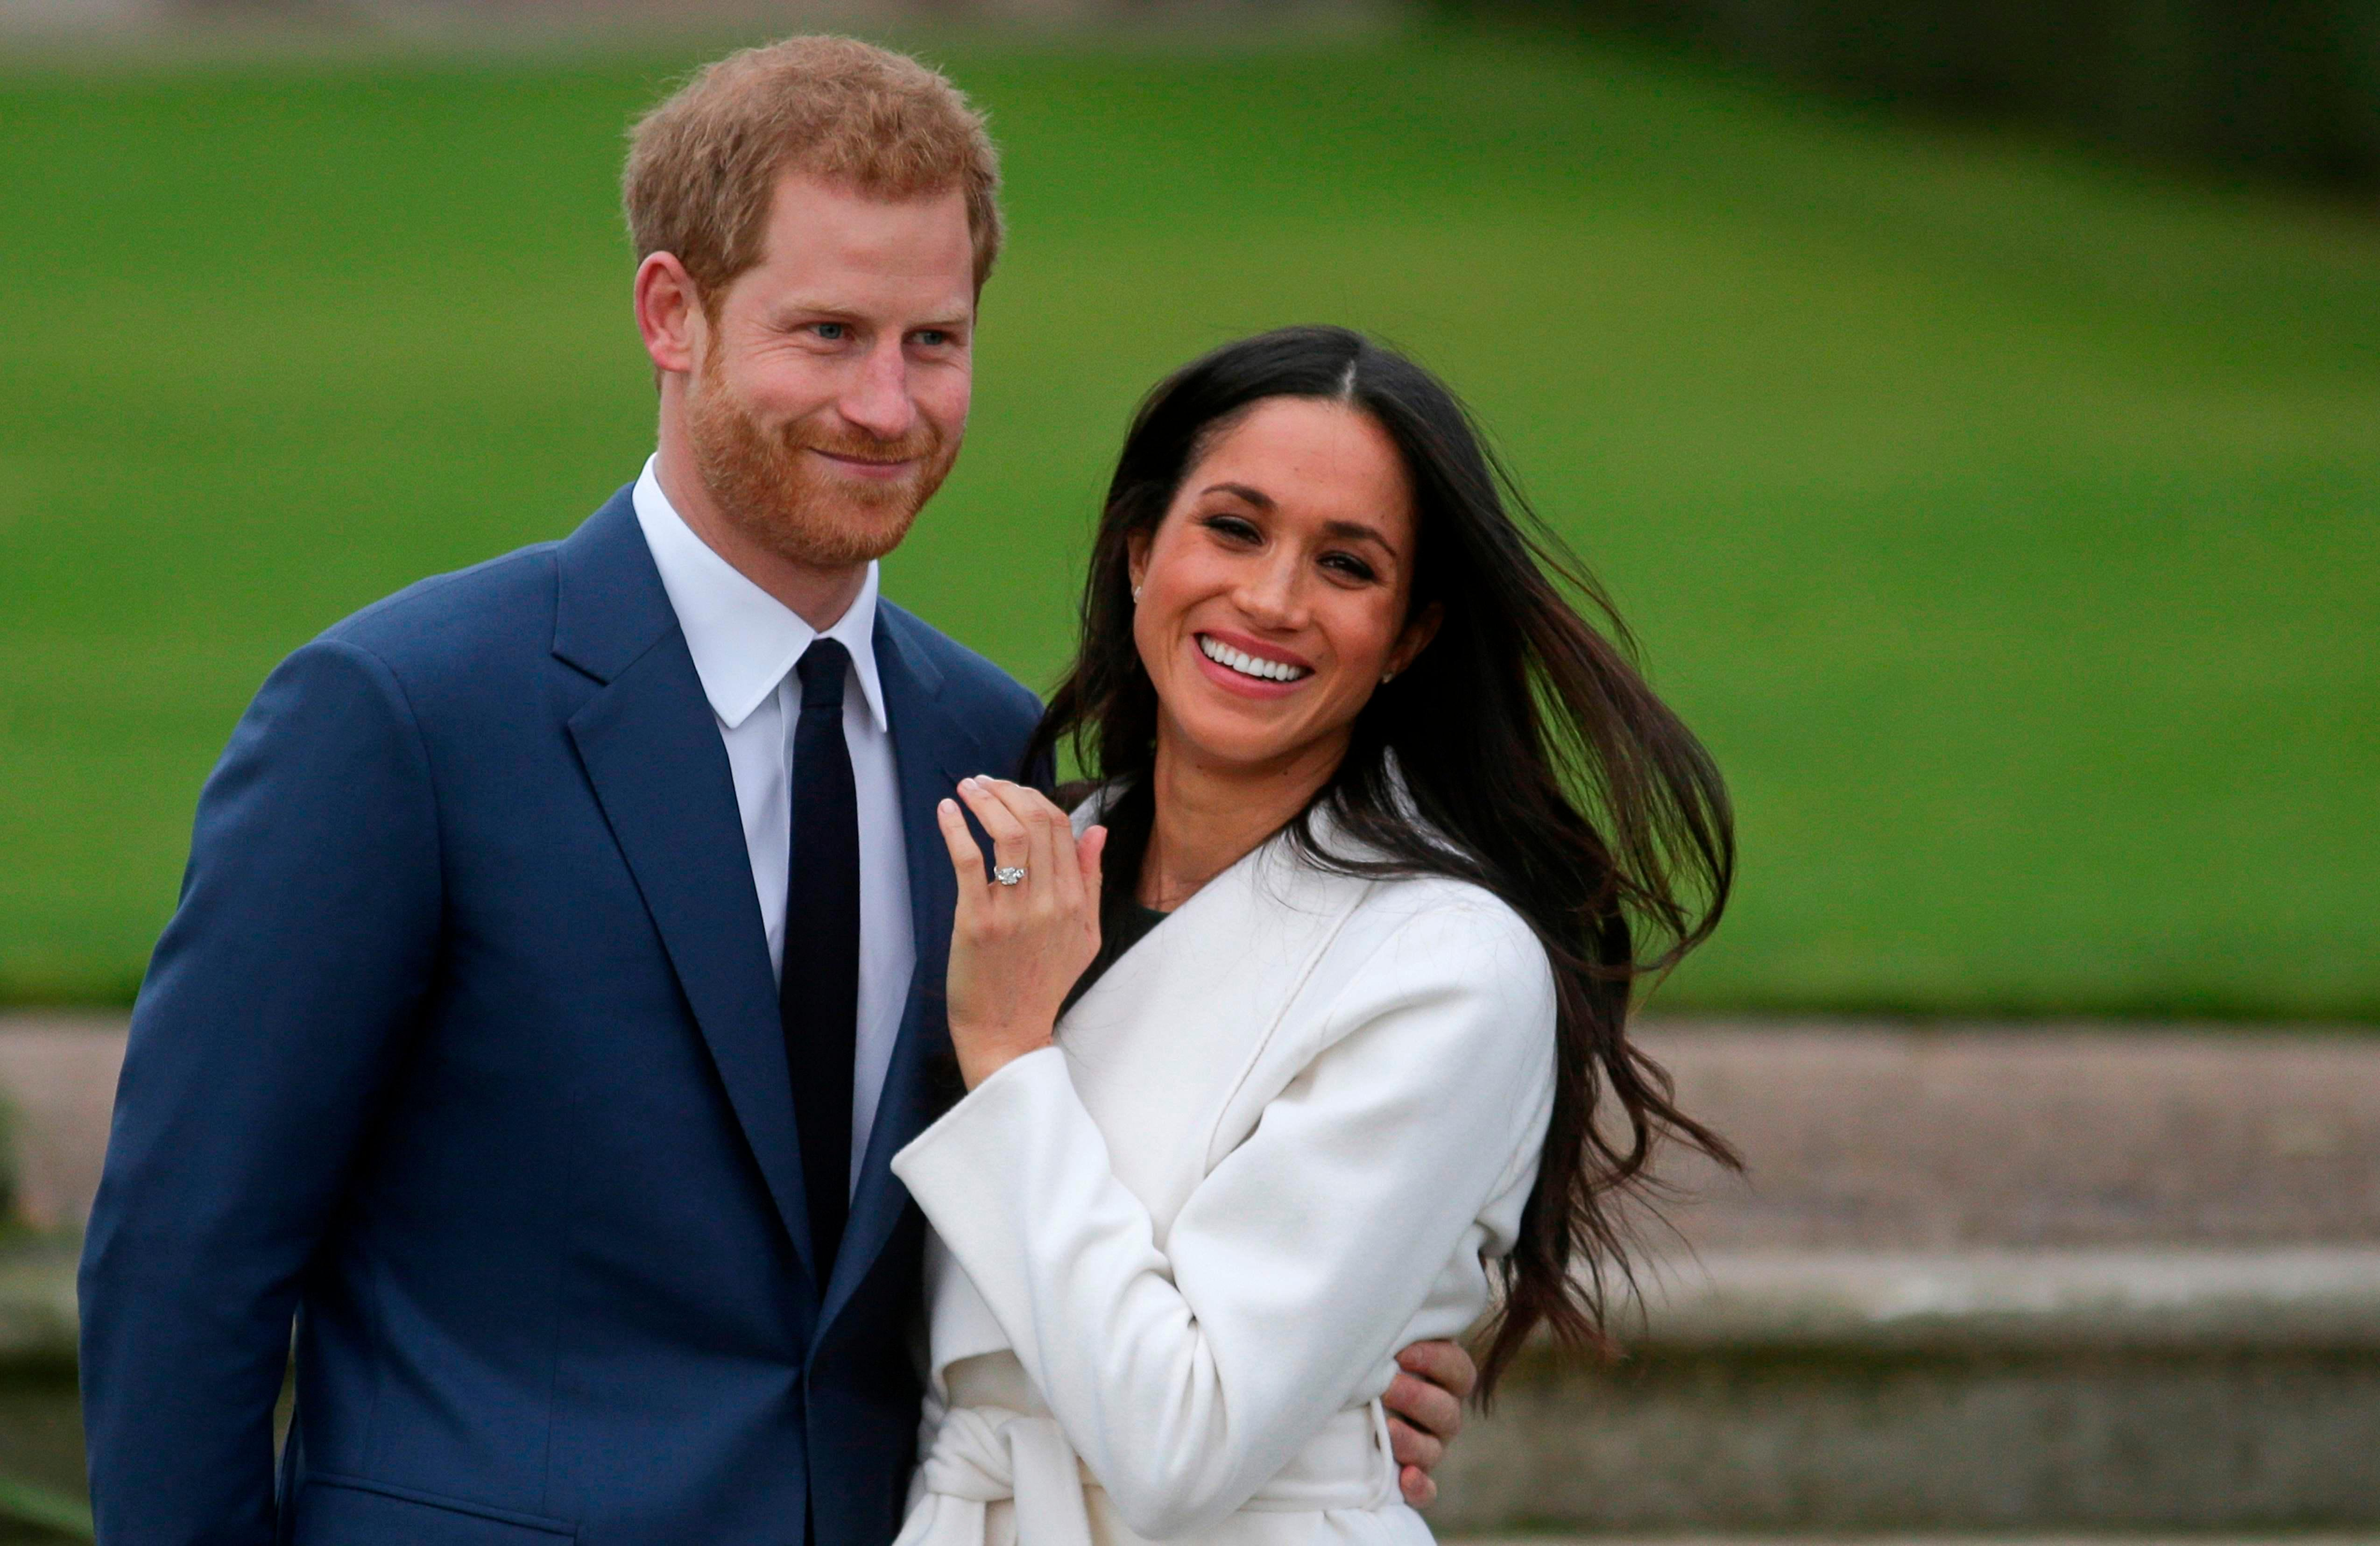 Pubs to open until 1am for 2 nights to celebrate Harry and Meghan's wedding